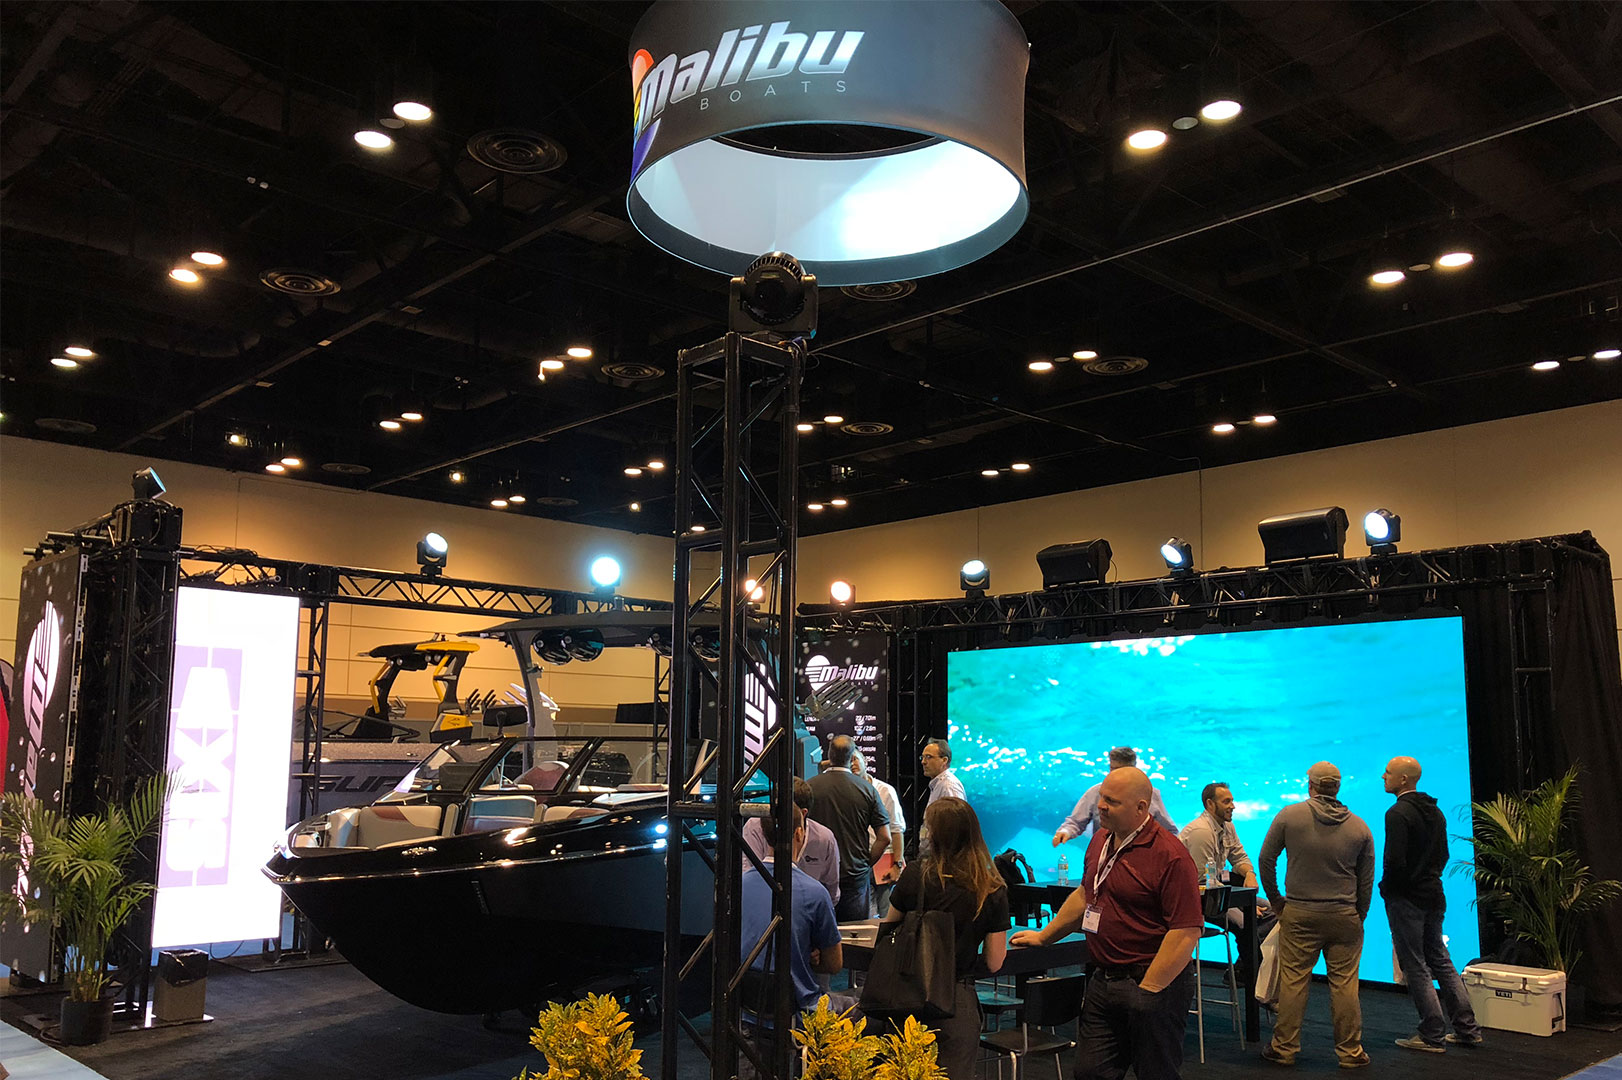 Malibu & Axis Attend Annual MDCE Show in Orlando